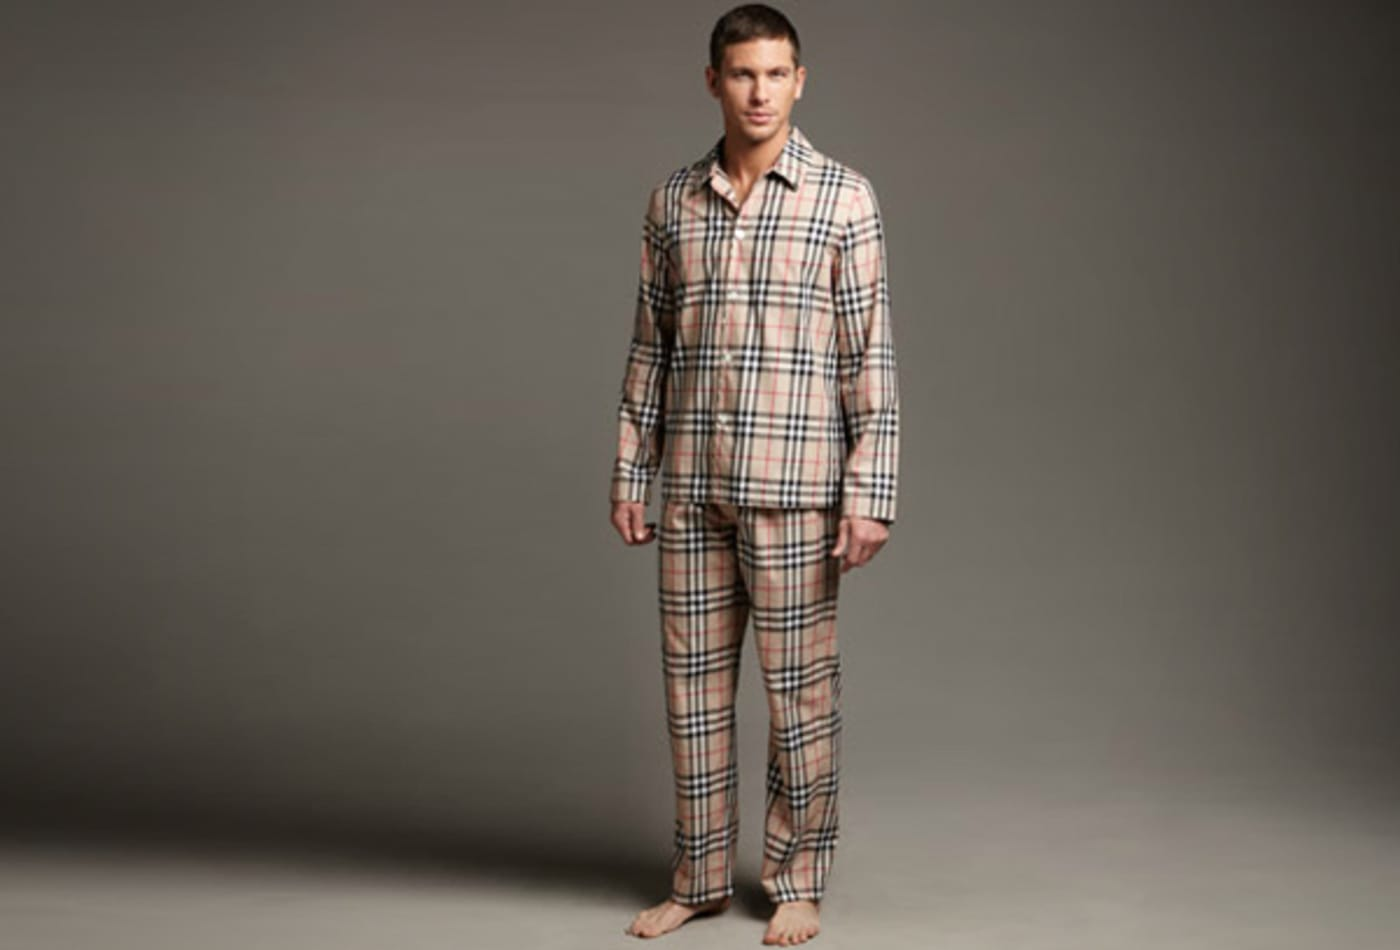 luxury-gifts-2012-burberry-pajamas.jpg